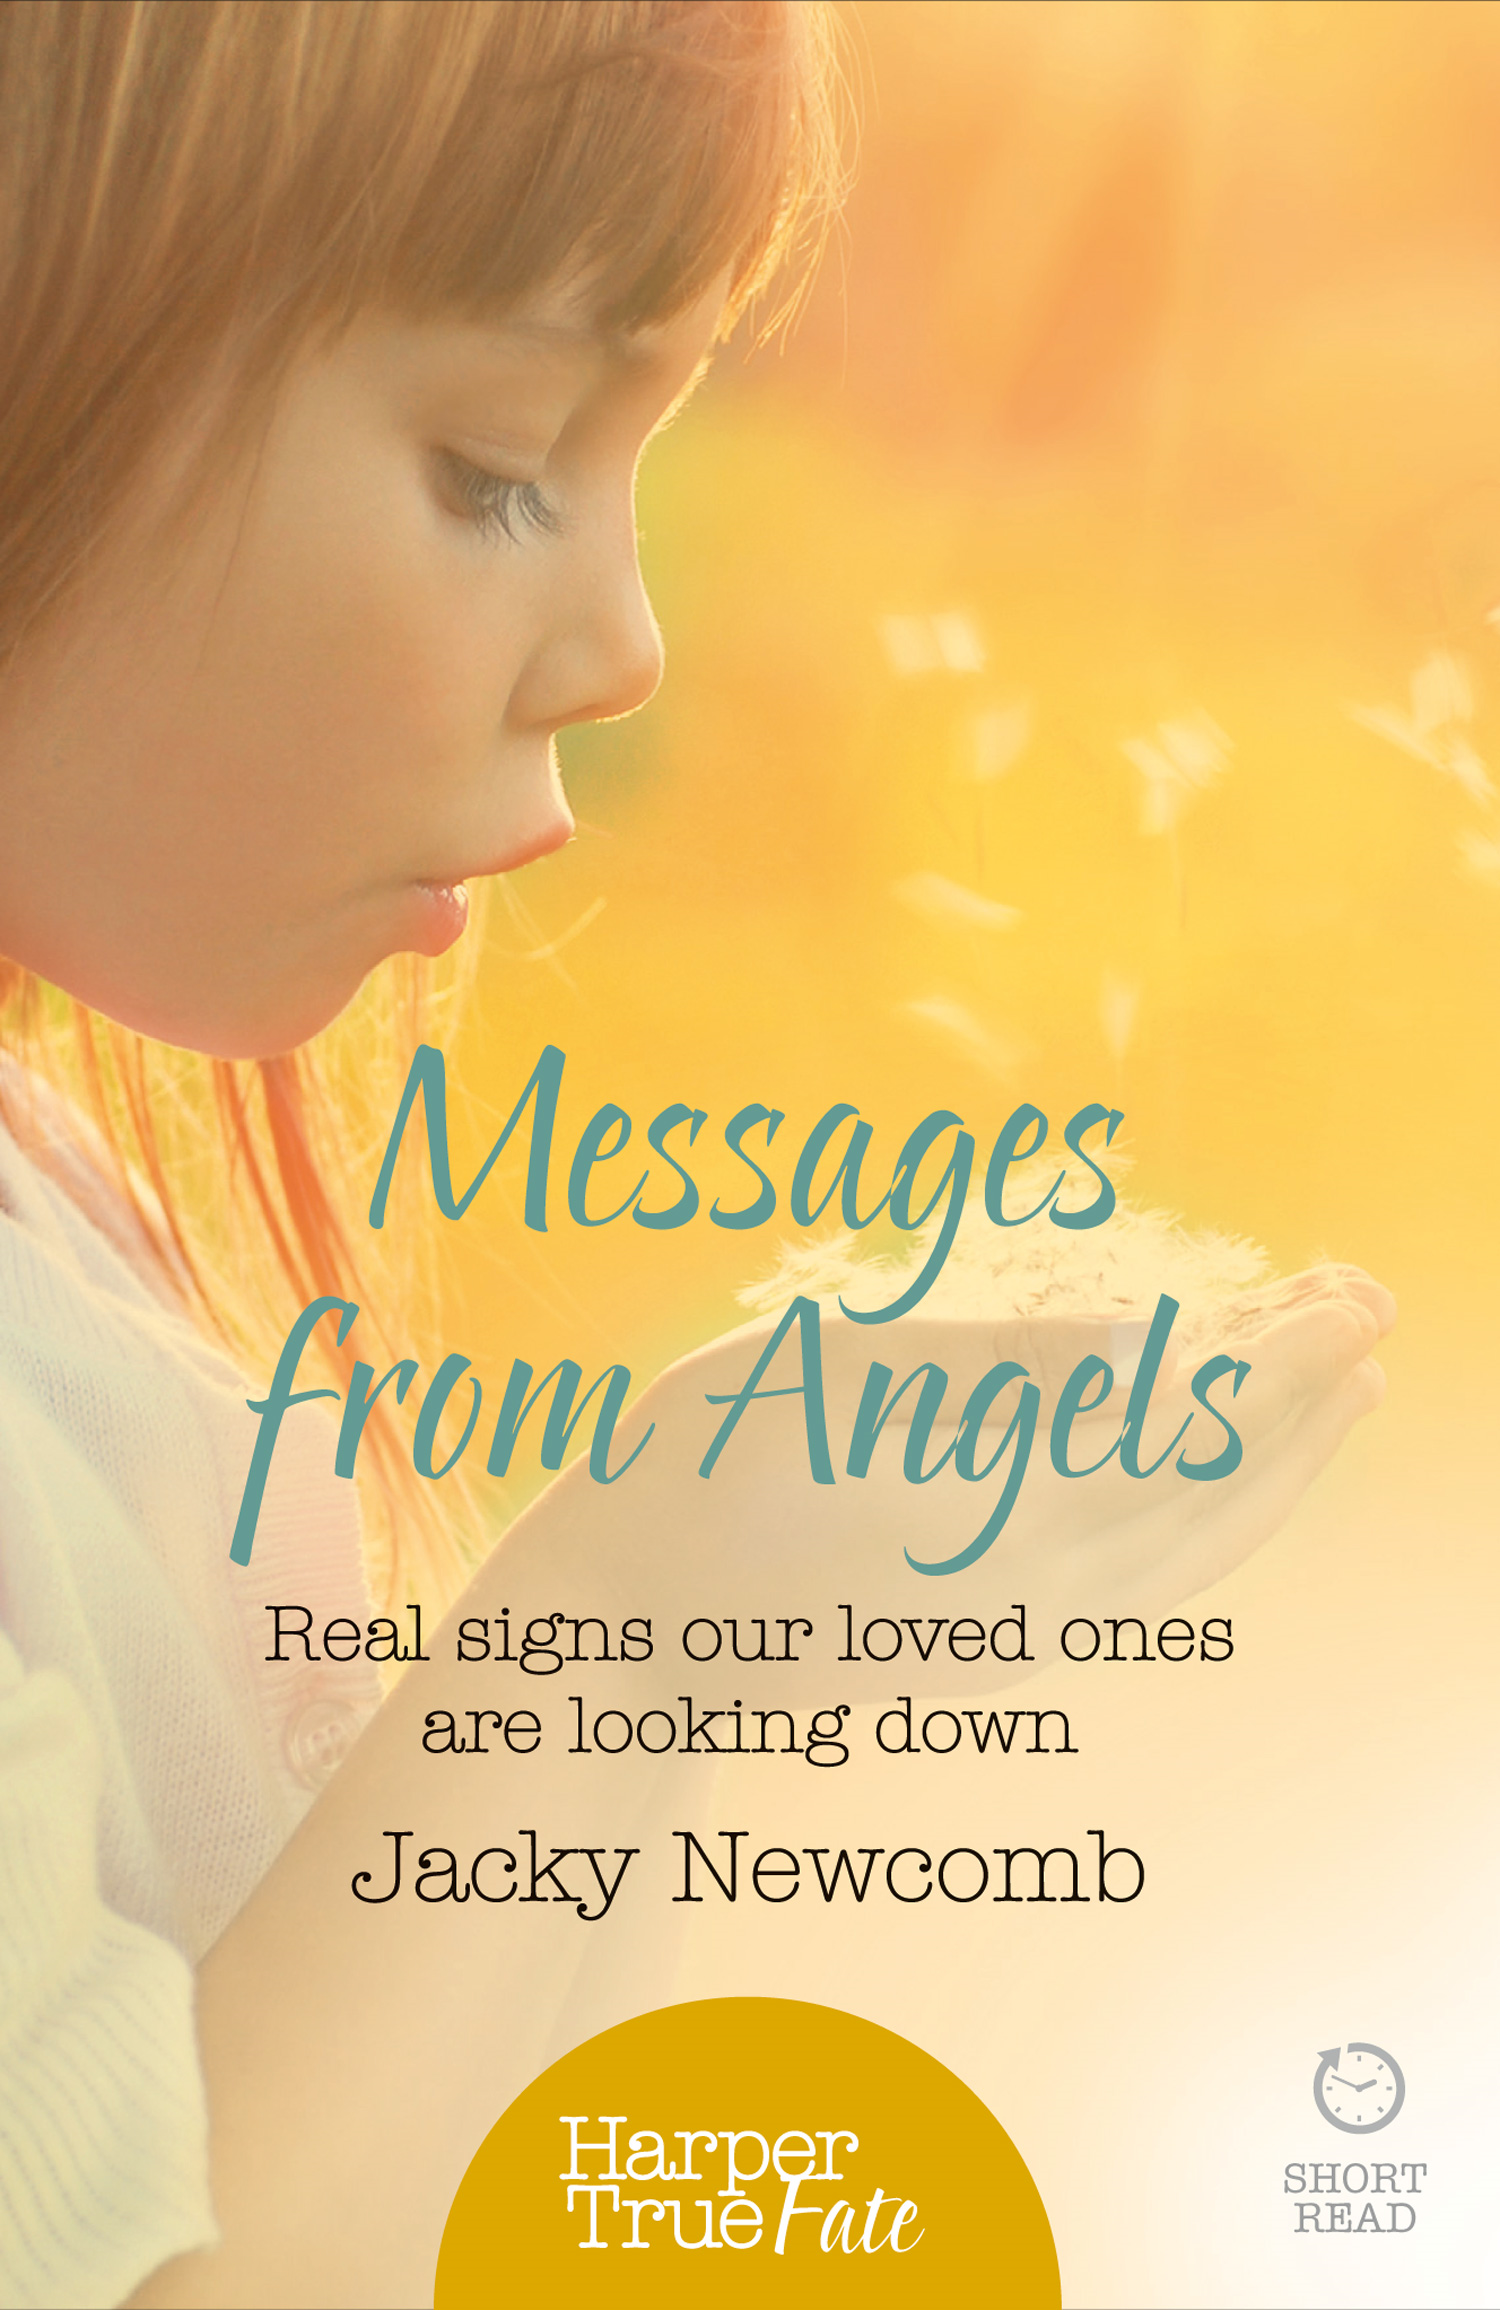 Messages from Angels: Real signs our loved ones are looking down (HarperTrue Fate ? A Short Read)